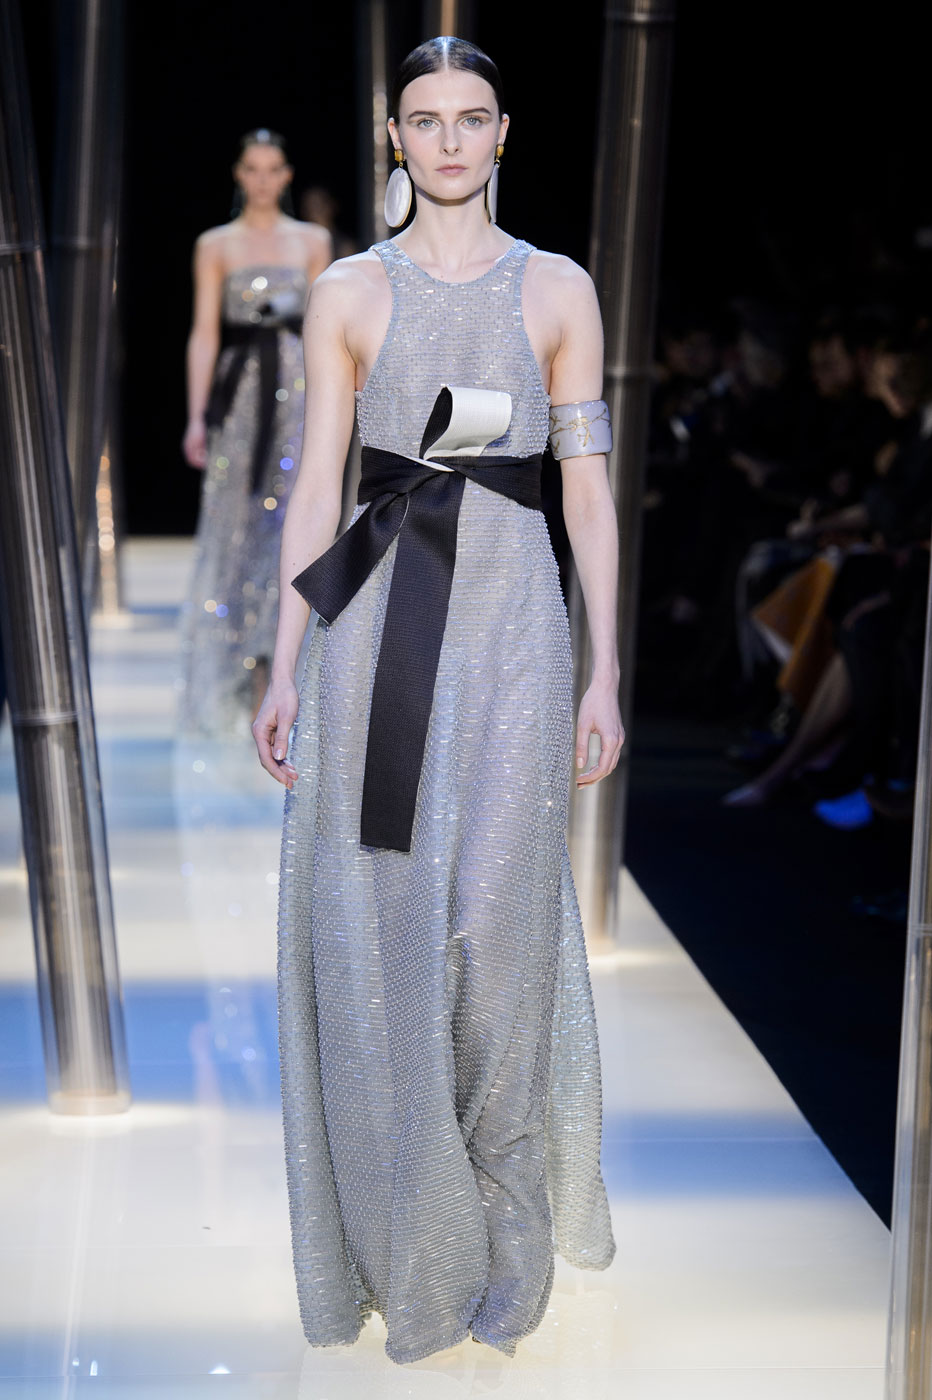 Giorgio-armani-Prive-fashion-runway-show-haute-couture-paris-spring-2015-the-impression-113